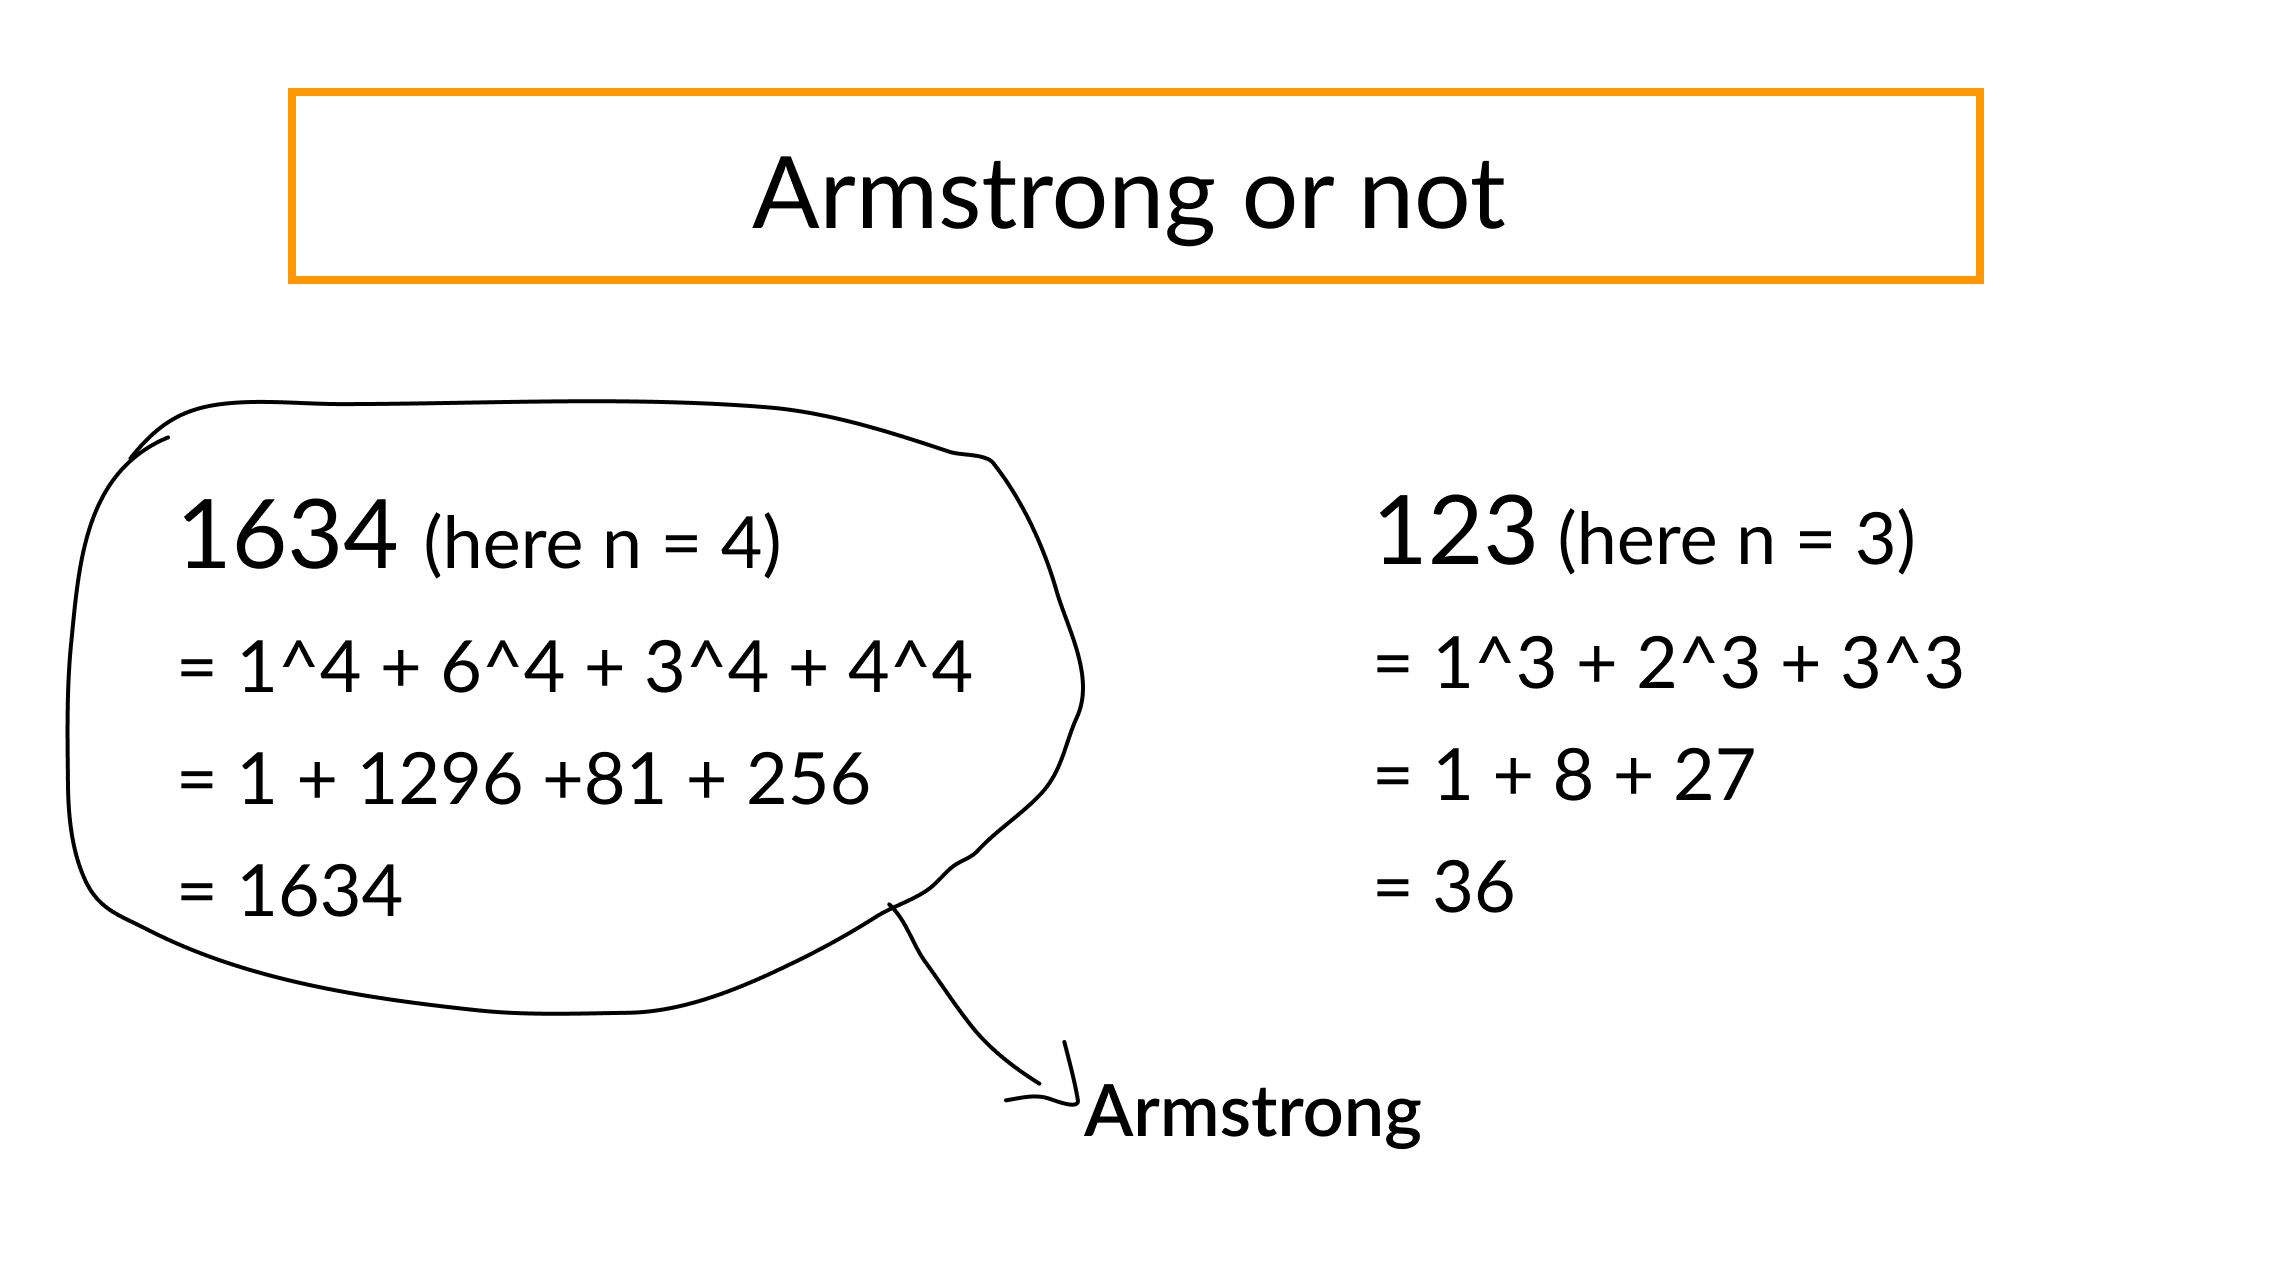 armstrong number between two intervals